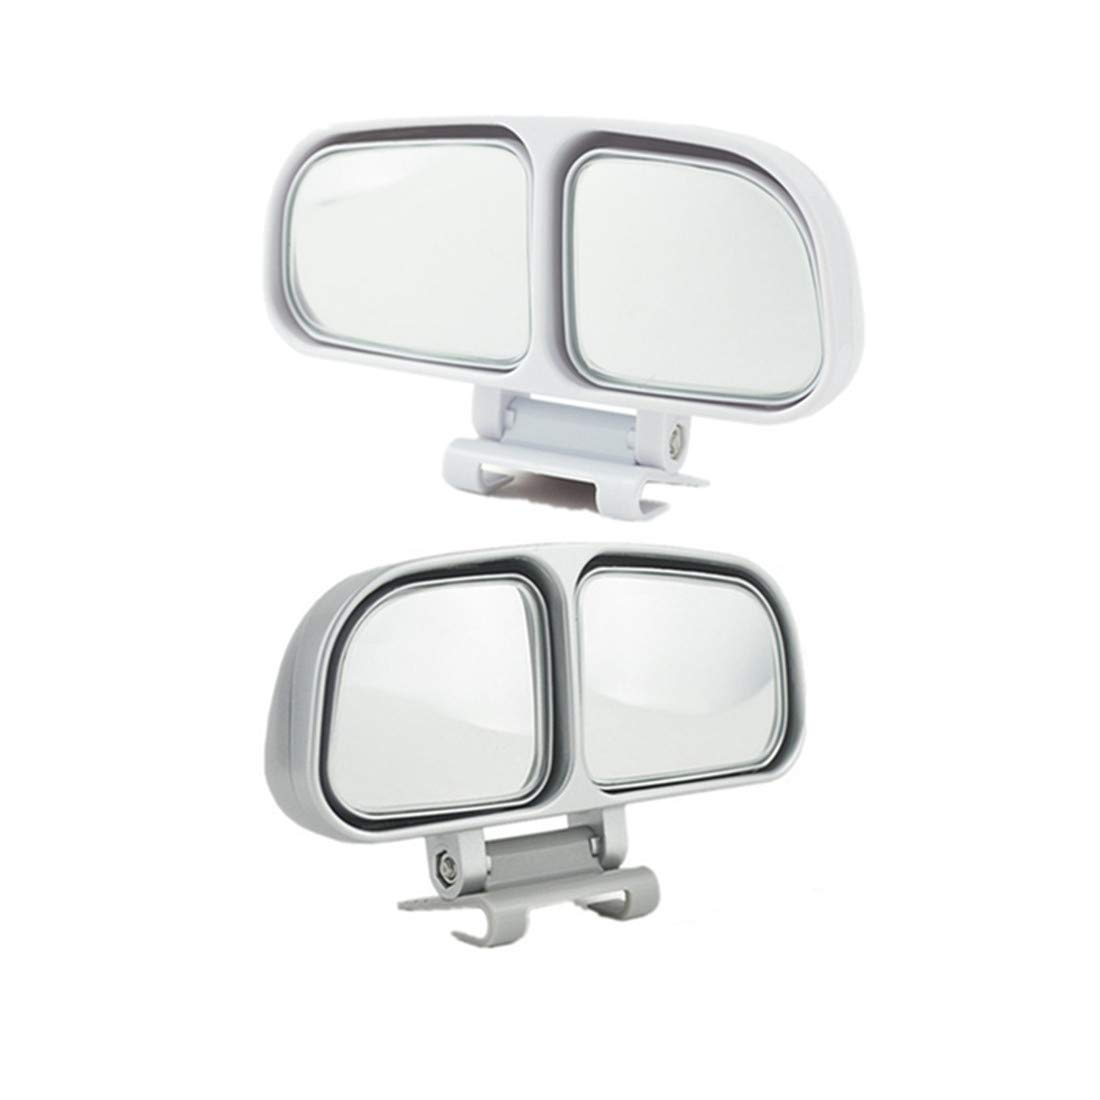 JMAHM 2 Piece Blind Spot Mirror Auxiliary Mirror for car Can be Adjustable or Fixed Installed Car Mirror(Left and Right) (Black)